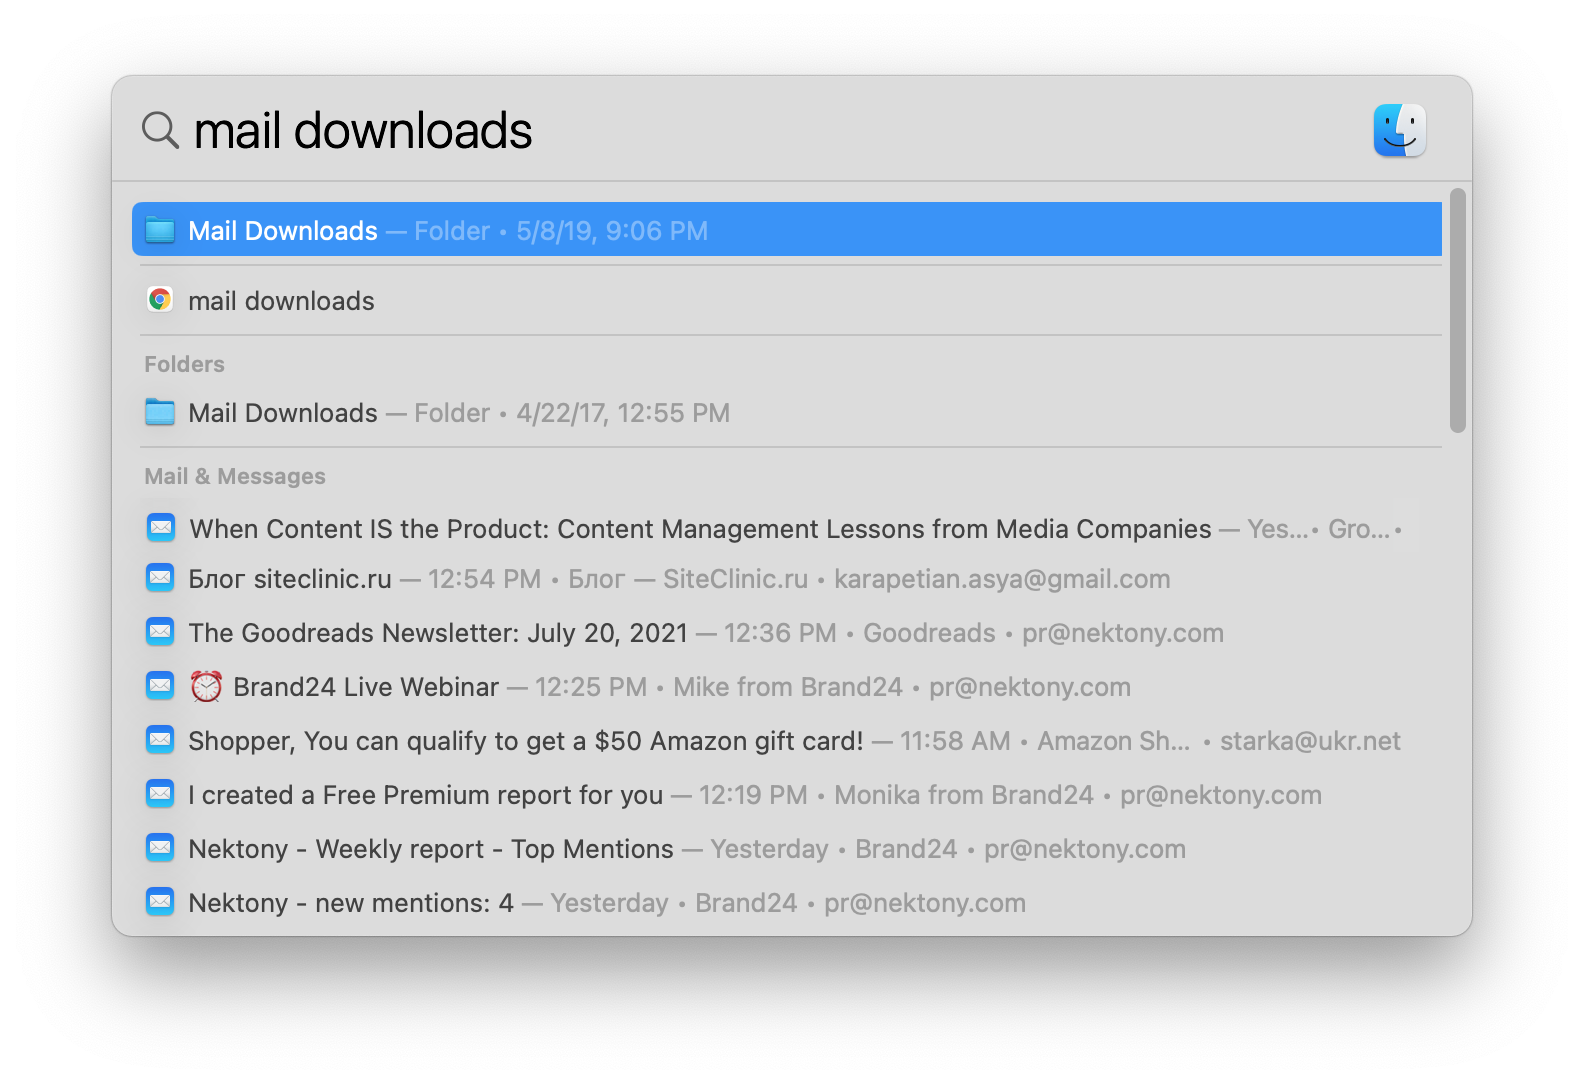 Searhing for mail downloads in Spotlight